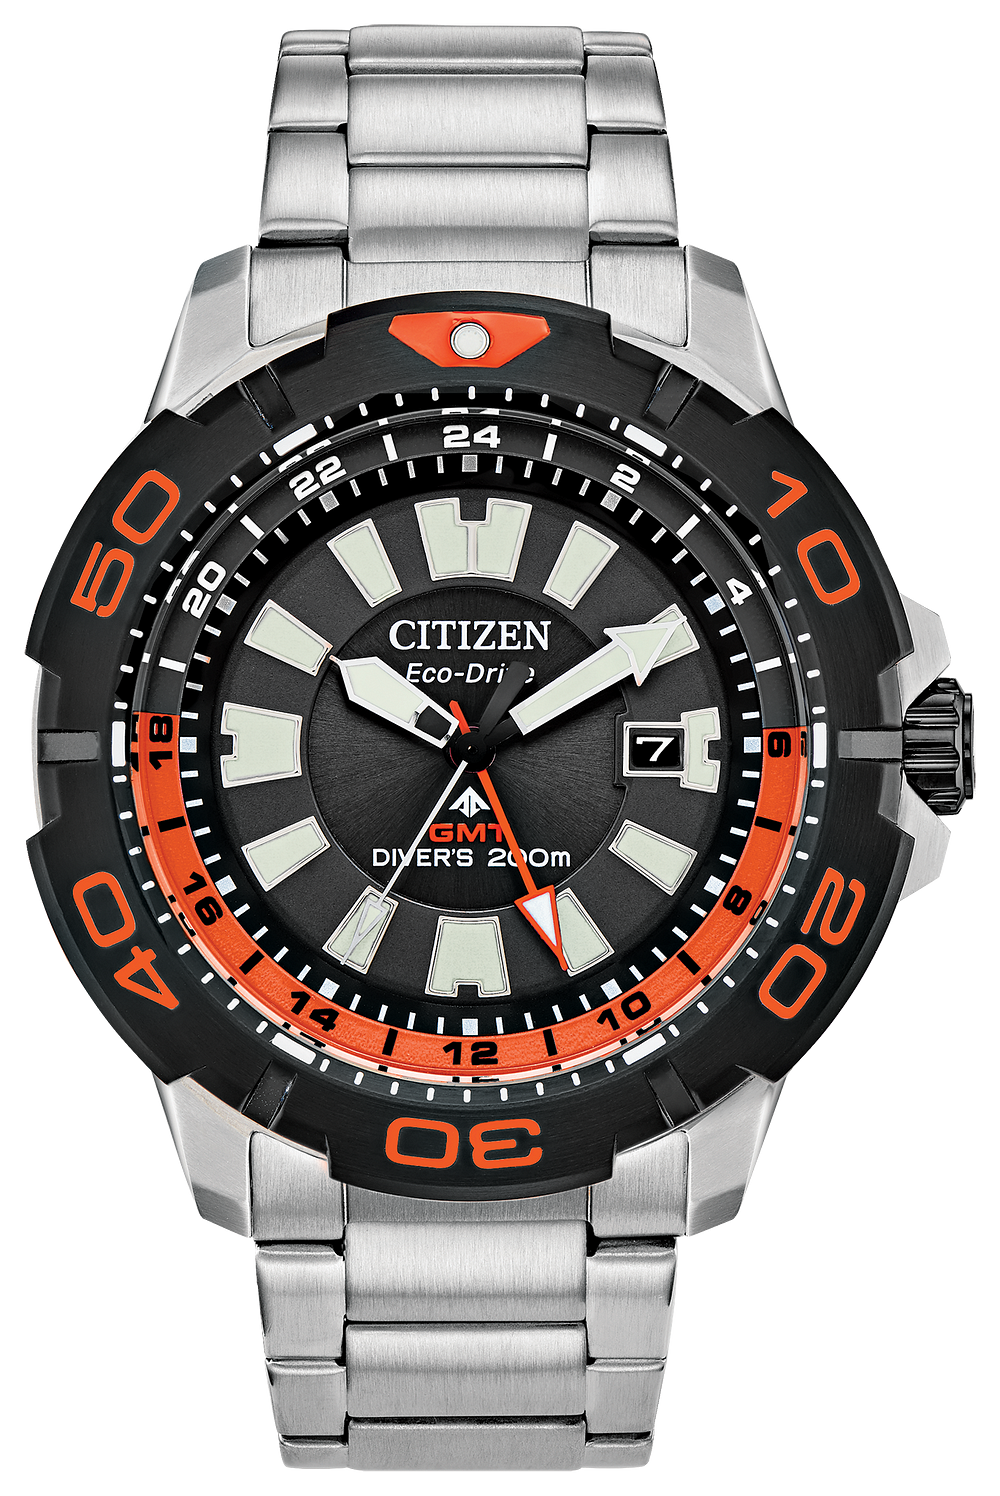 Citizen's newest Promaster GMT Promaster%20GMT